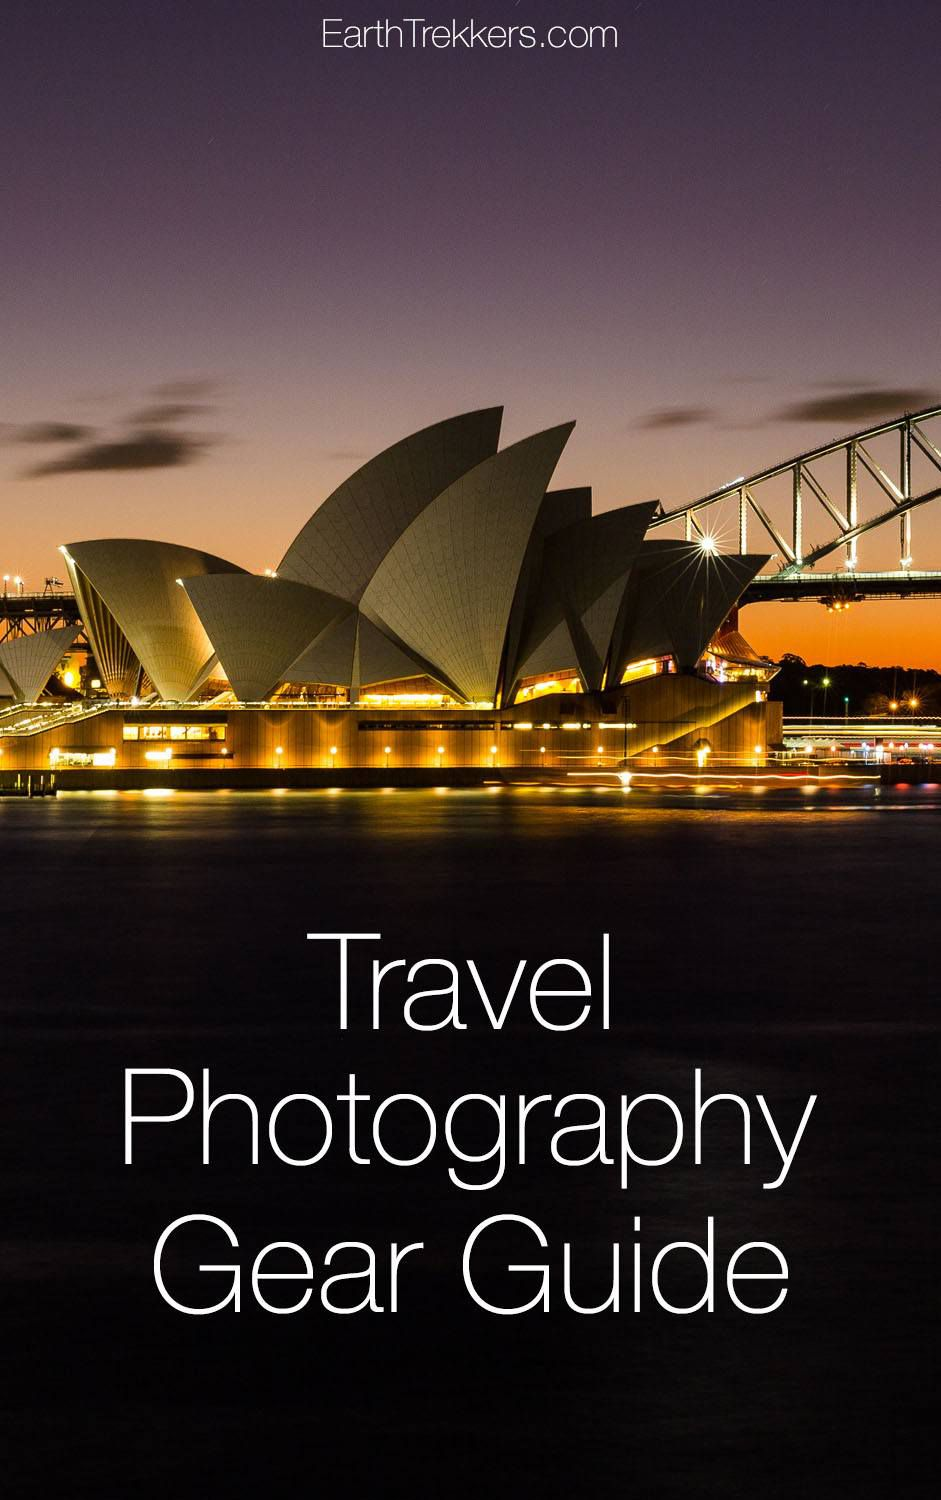 Travel photography gear guide. The camera and accessories we use when we travel.